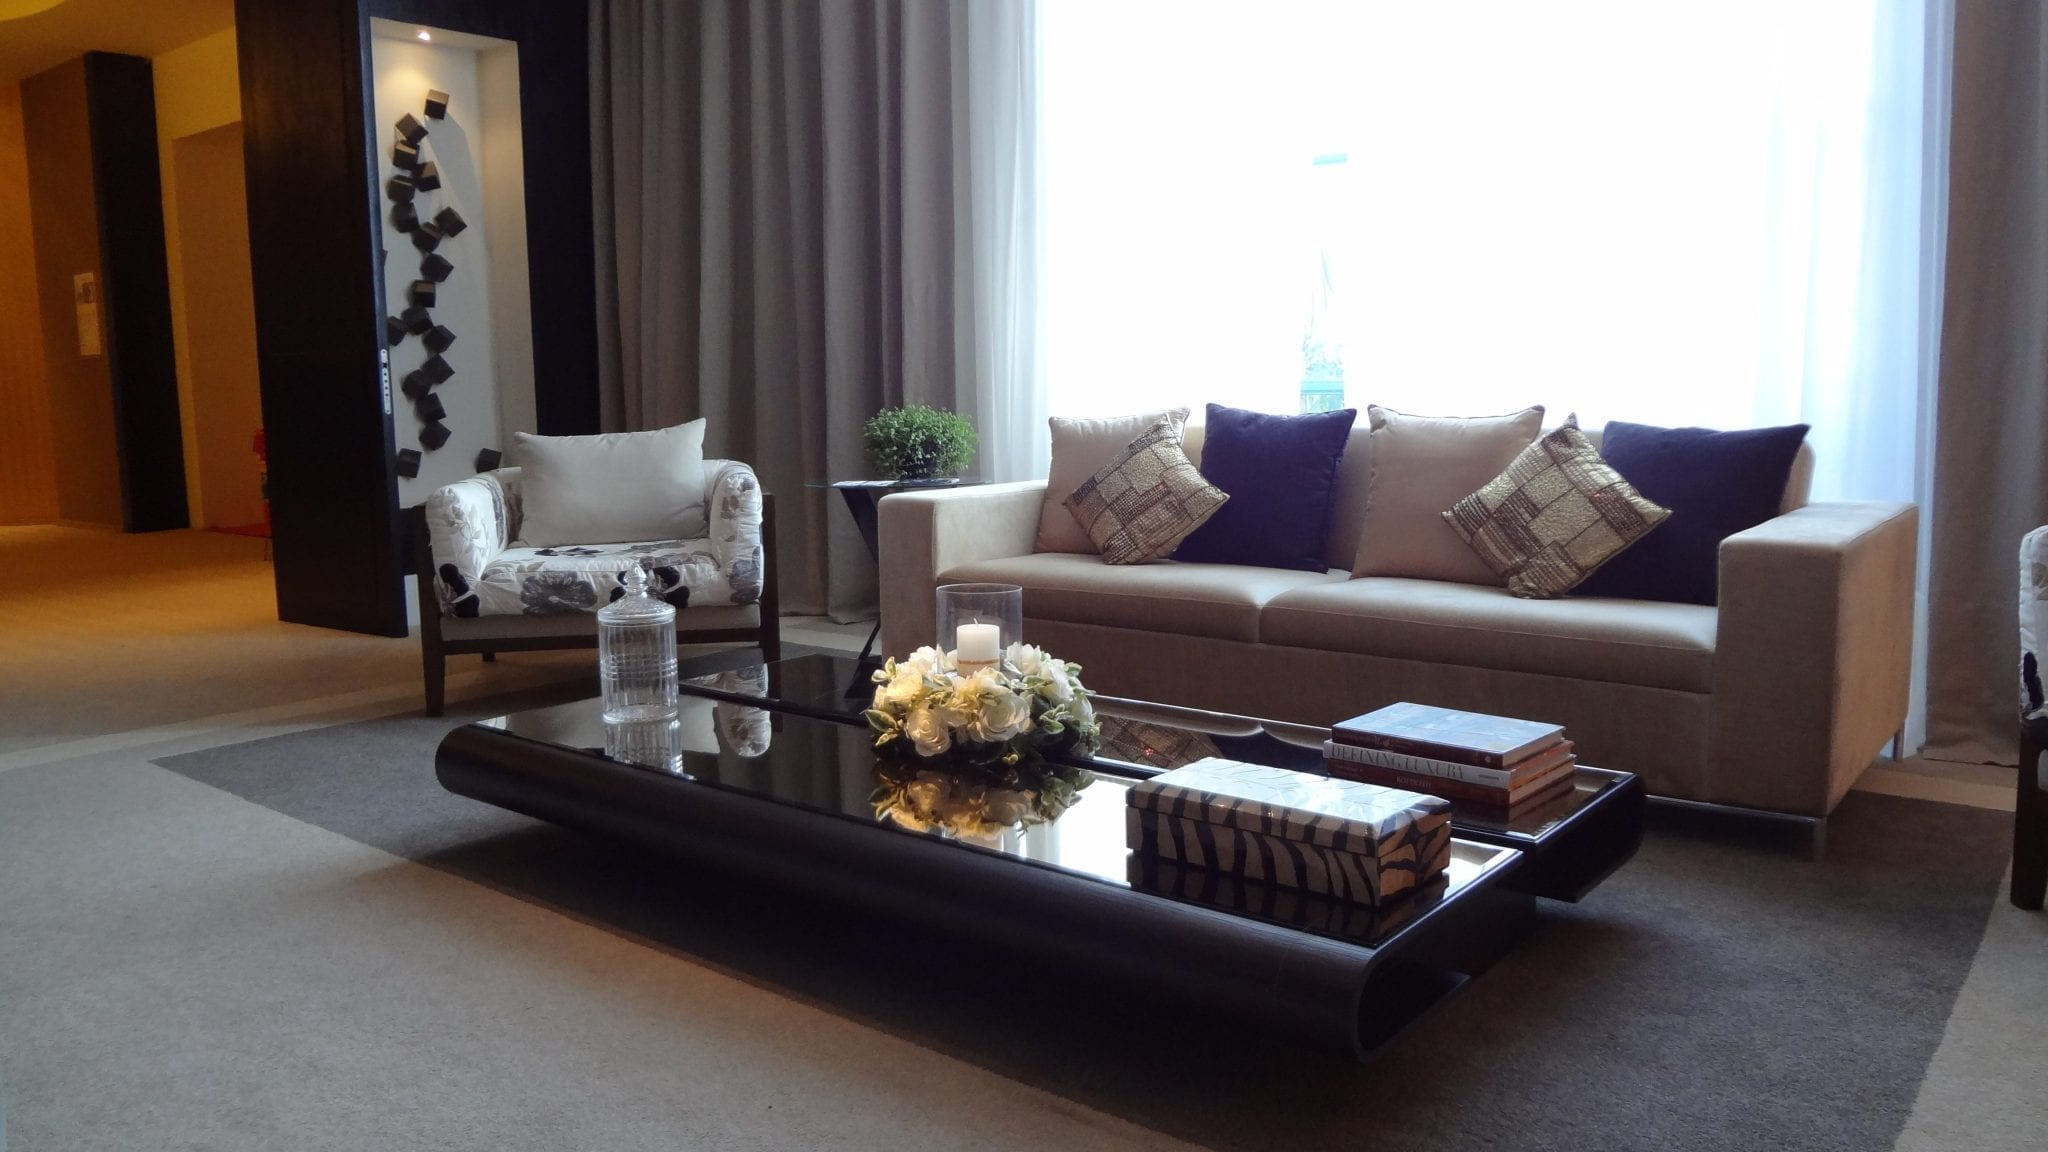 Top Luxury Cleaning Questions: How Often Should You Clean Your Rug?